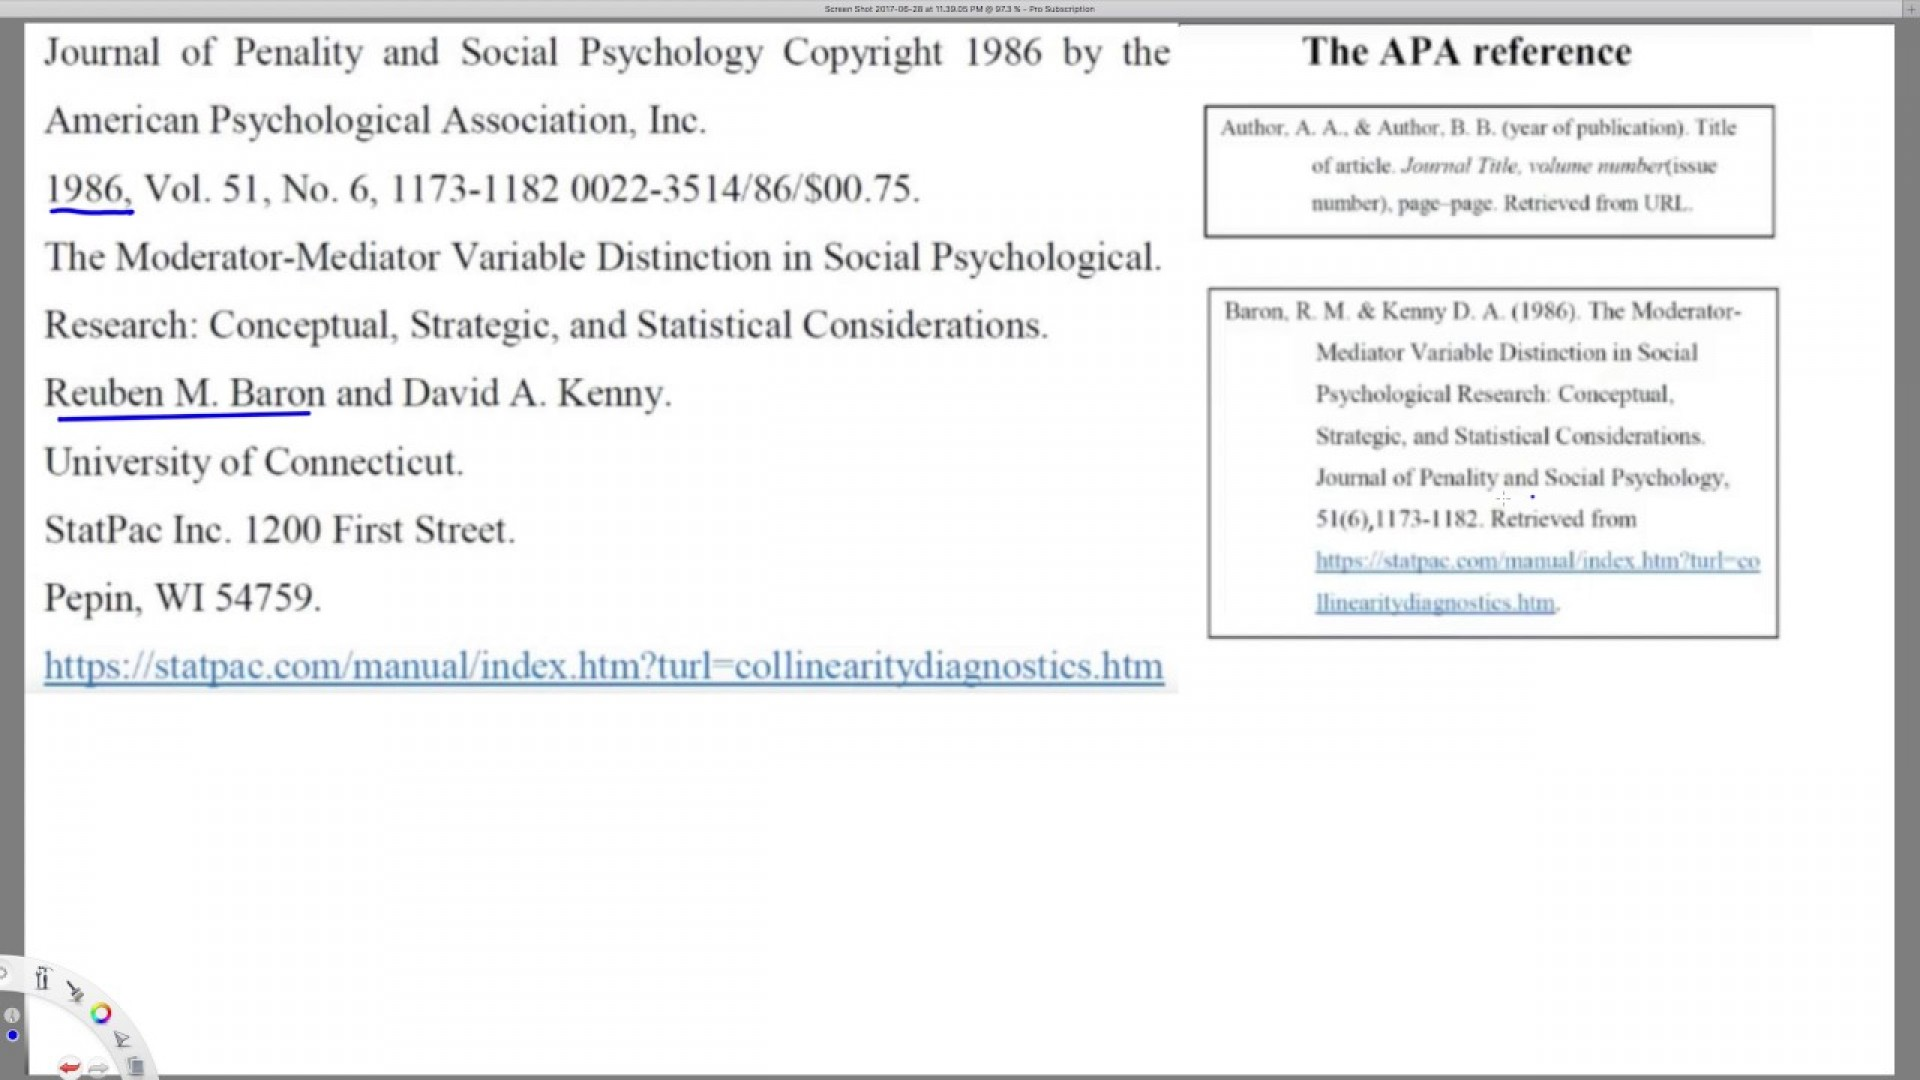 011 Maxresdefault Research Paper Citing Someone Elses Staggering Apa Else's 1920